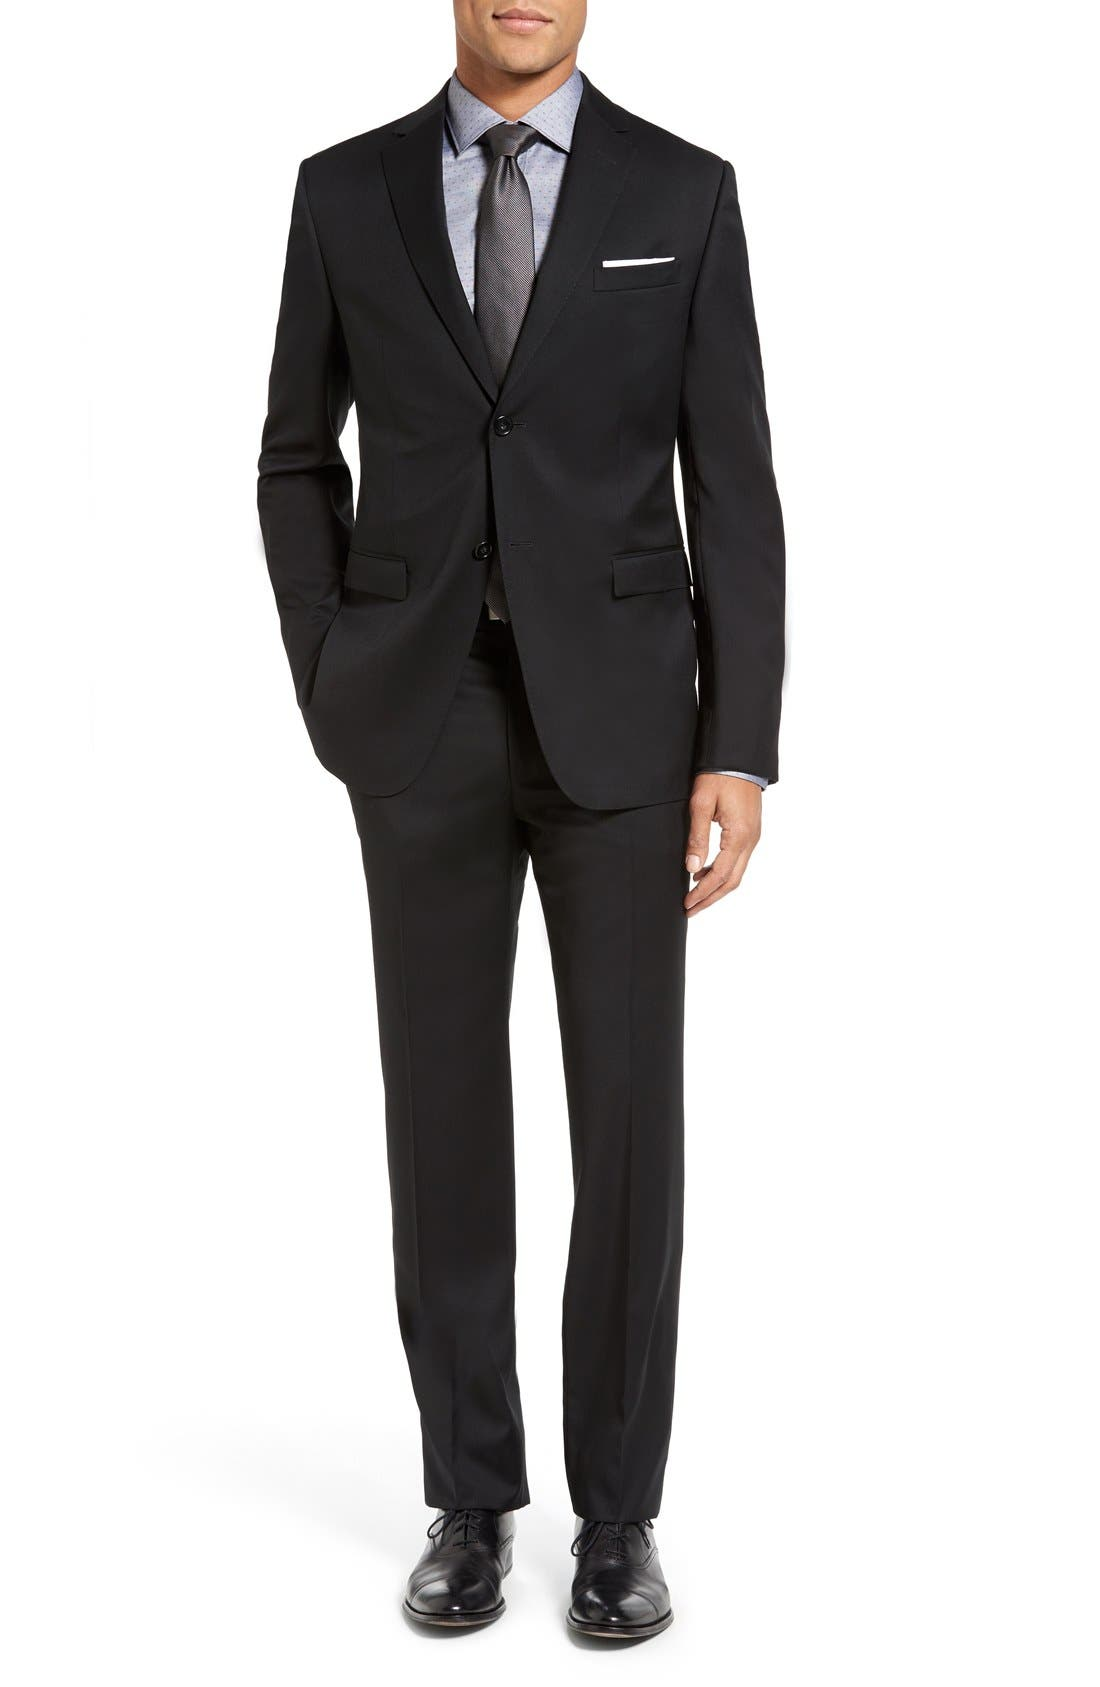 Alternate Image 1 Selected - Z Zegna Drop 7 Trim Fit Wool Suit